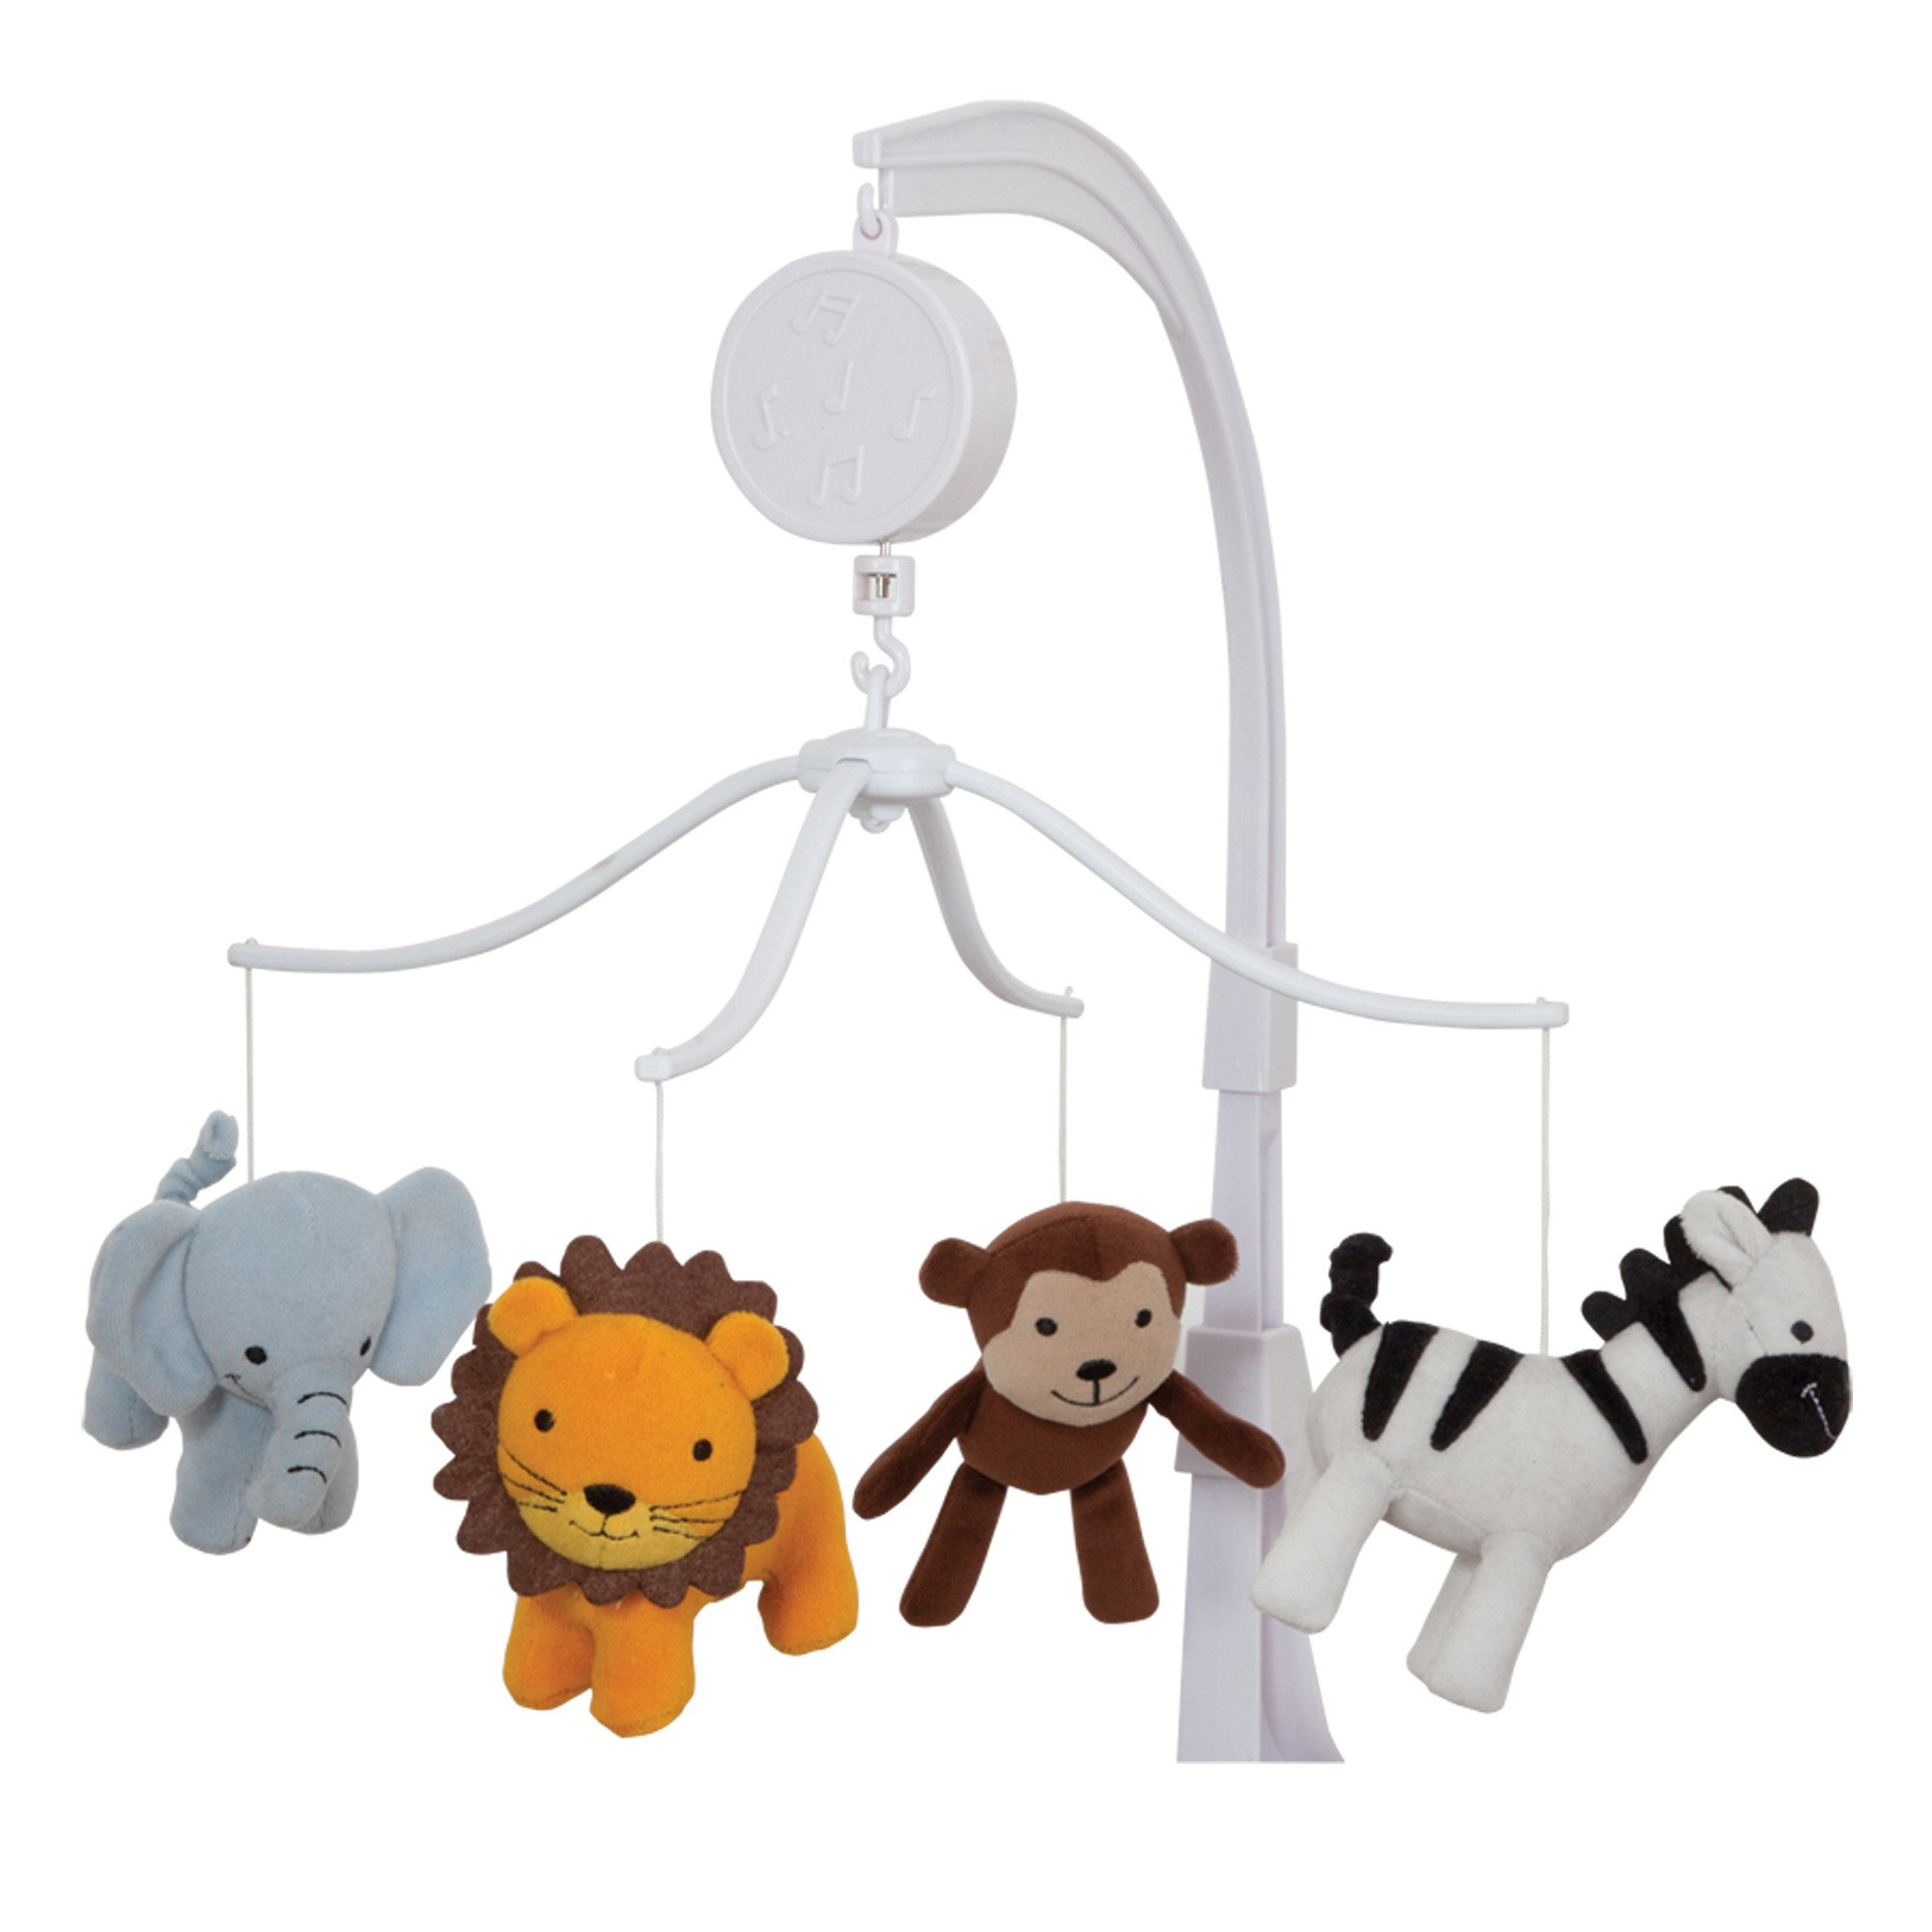 Mocha Koala Baby Essentials Jungle Mobile